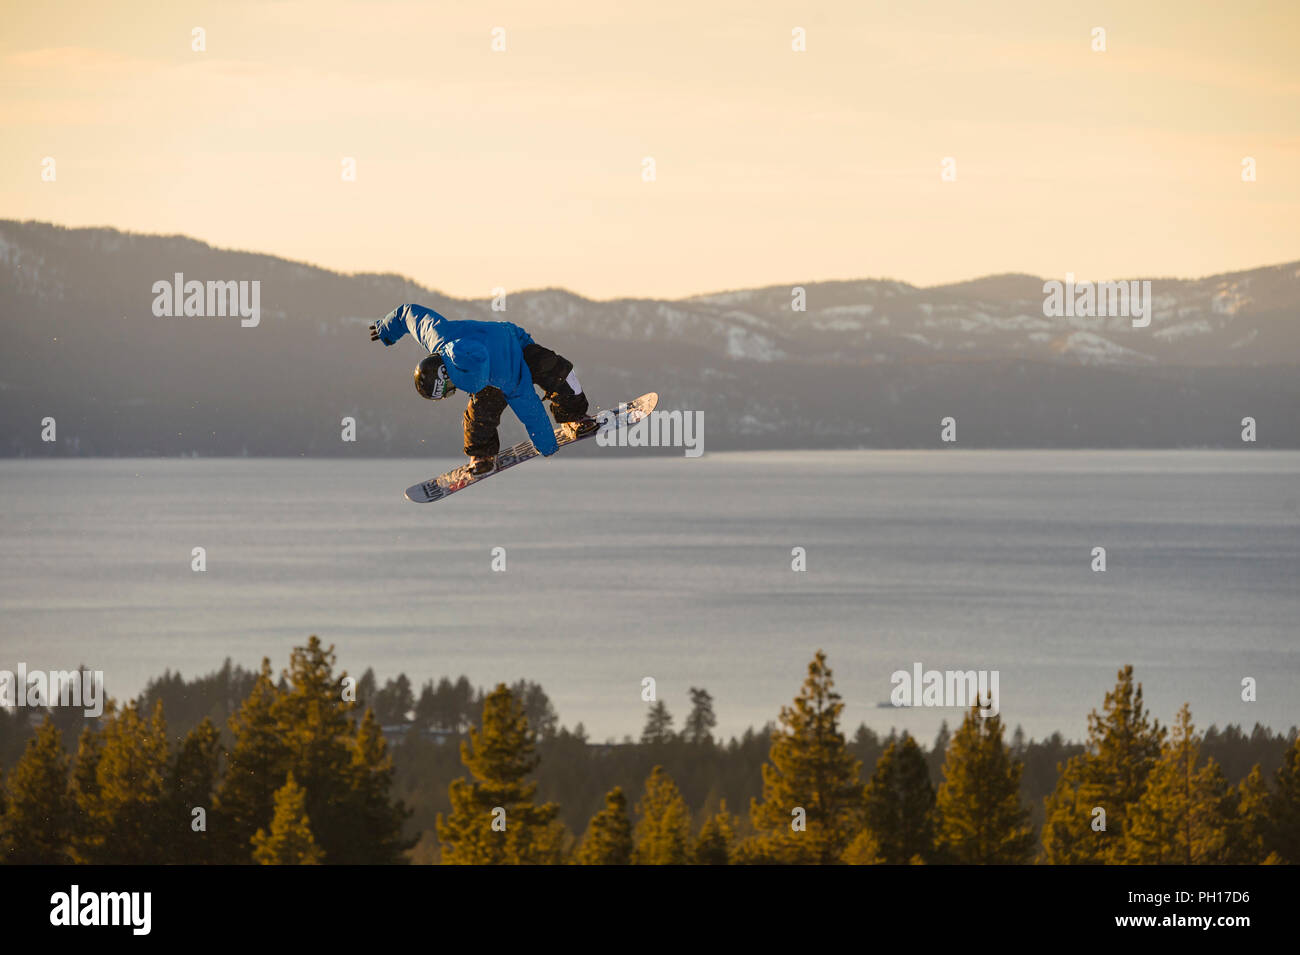 Big Air snowboarding competition at Heavenly Valley Ski Resort in South Lake Tahoe, California, North America - Stock Image